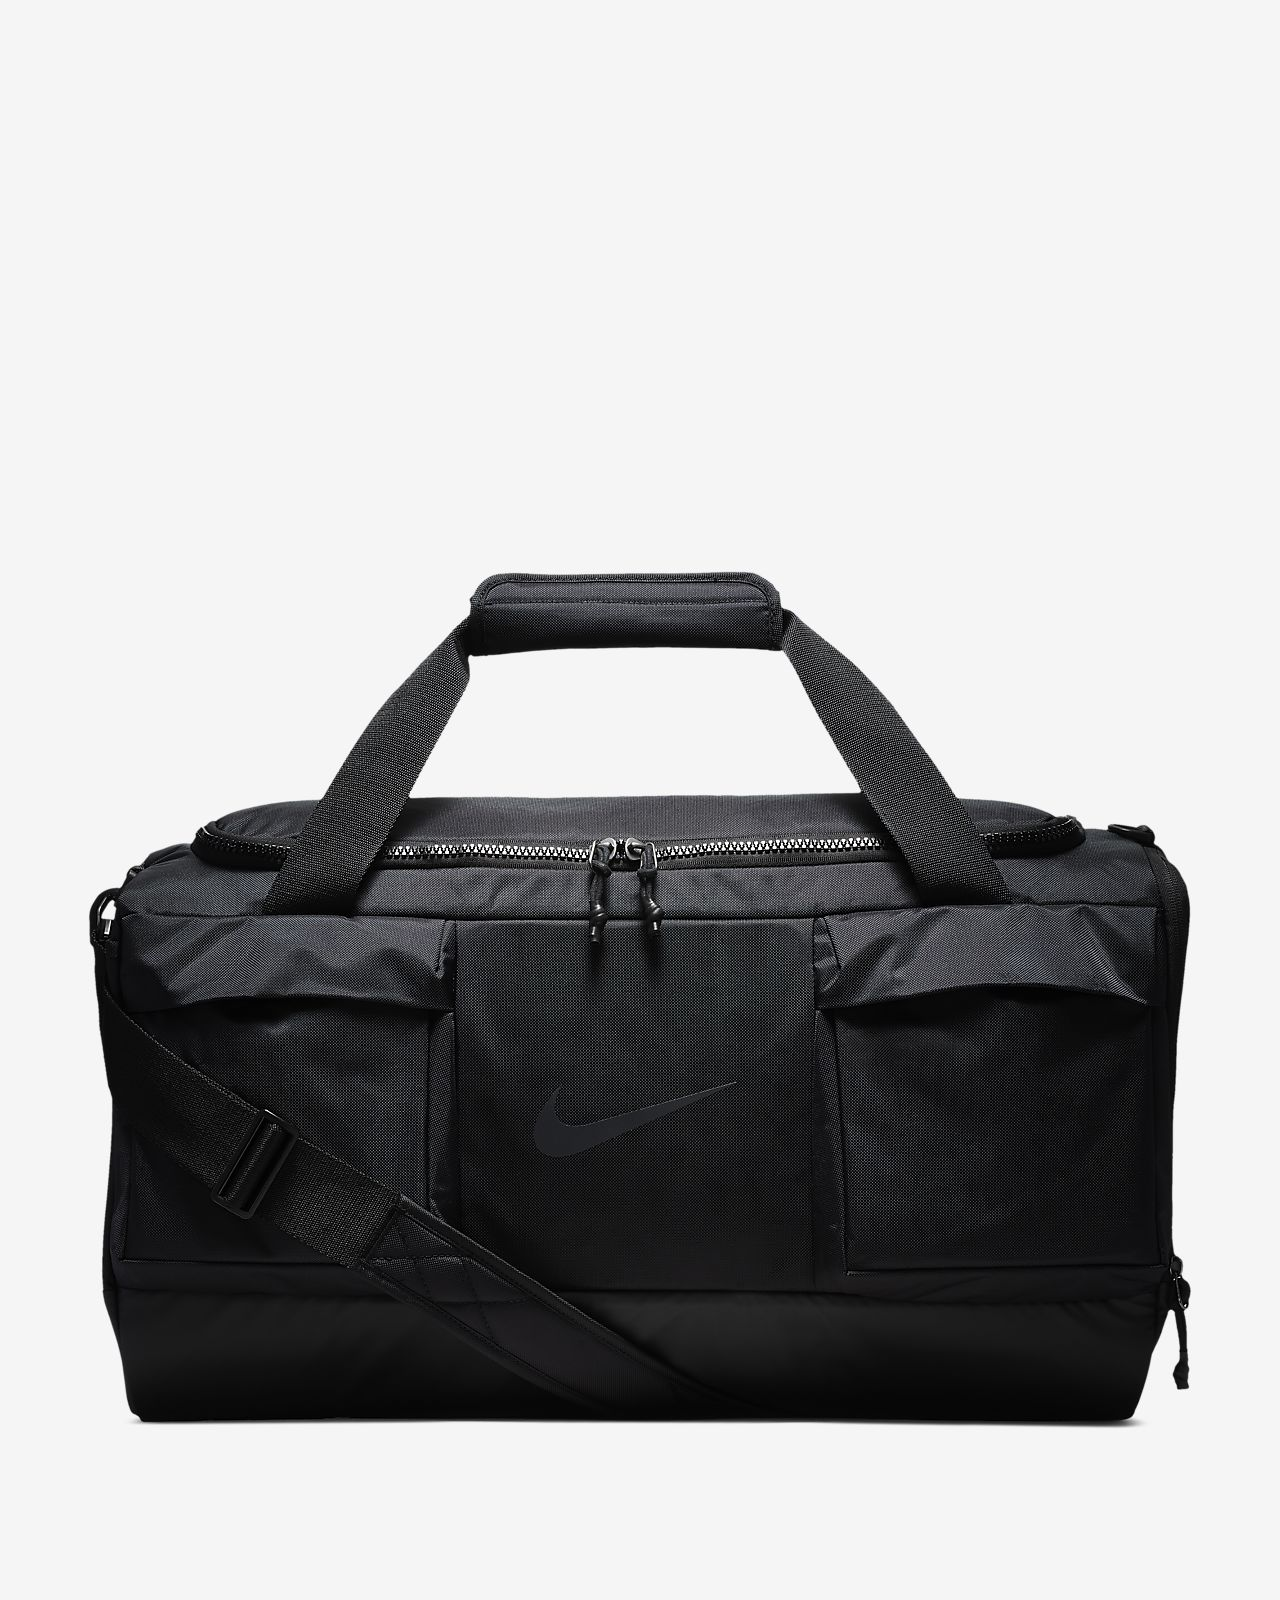 3e30d16da Nike Vapor Power Men's Training Duffel Bag (Medium). Nike.com GB